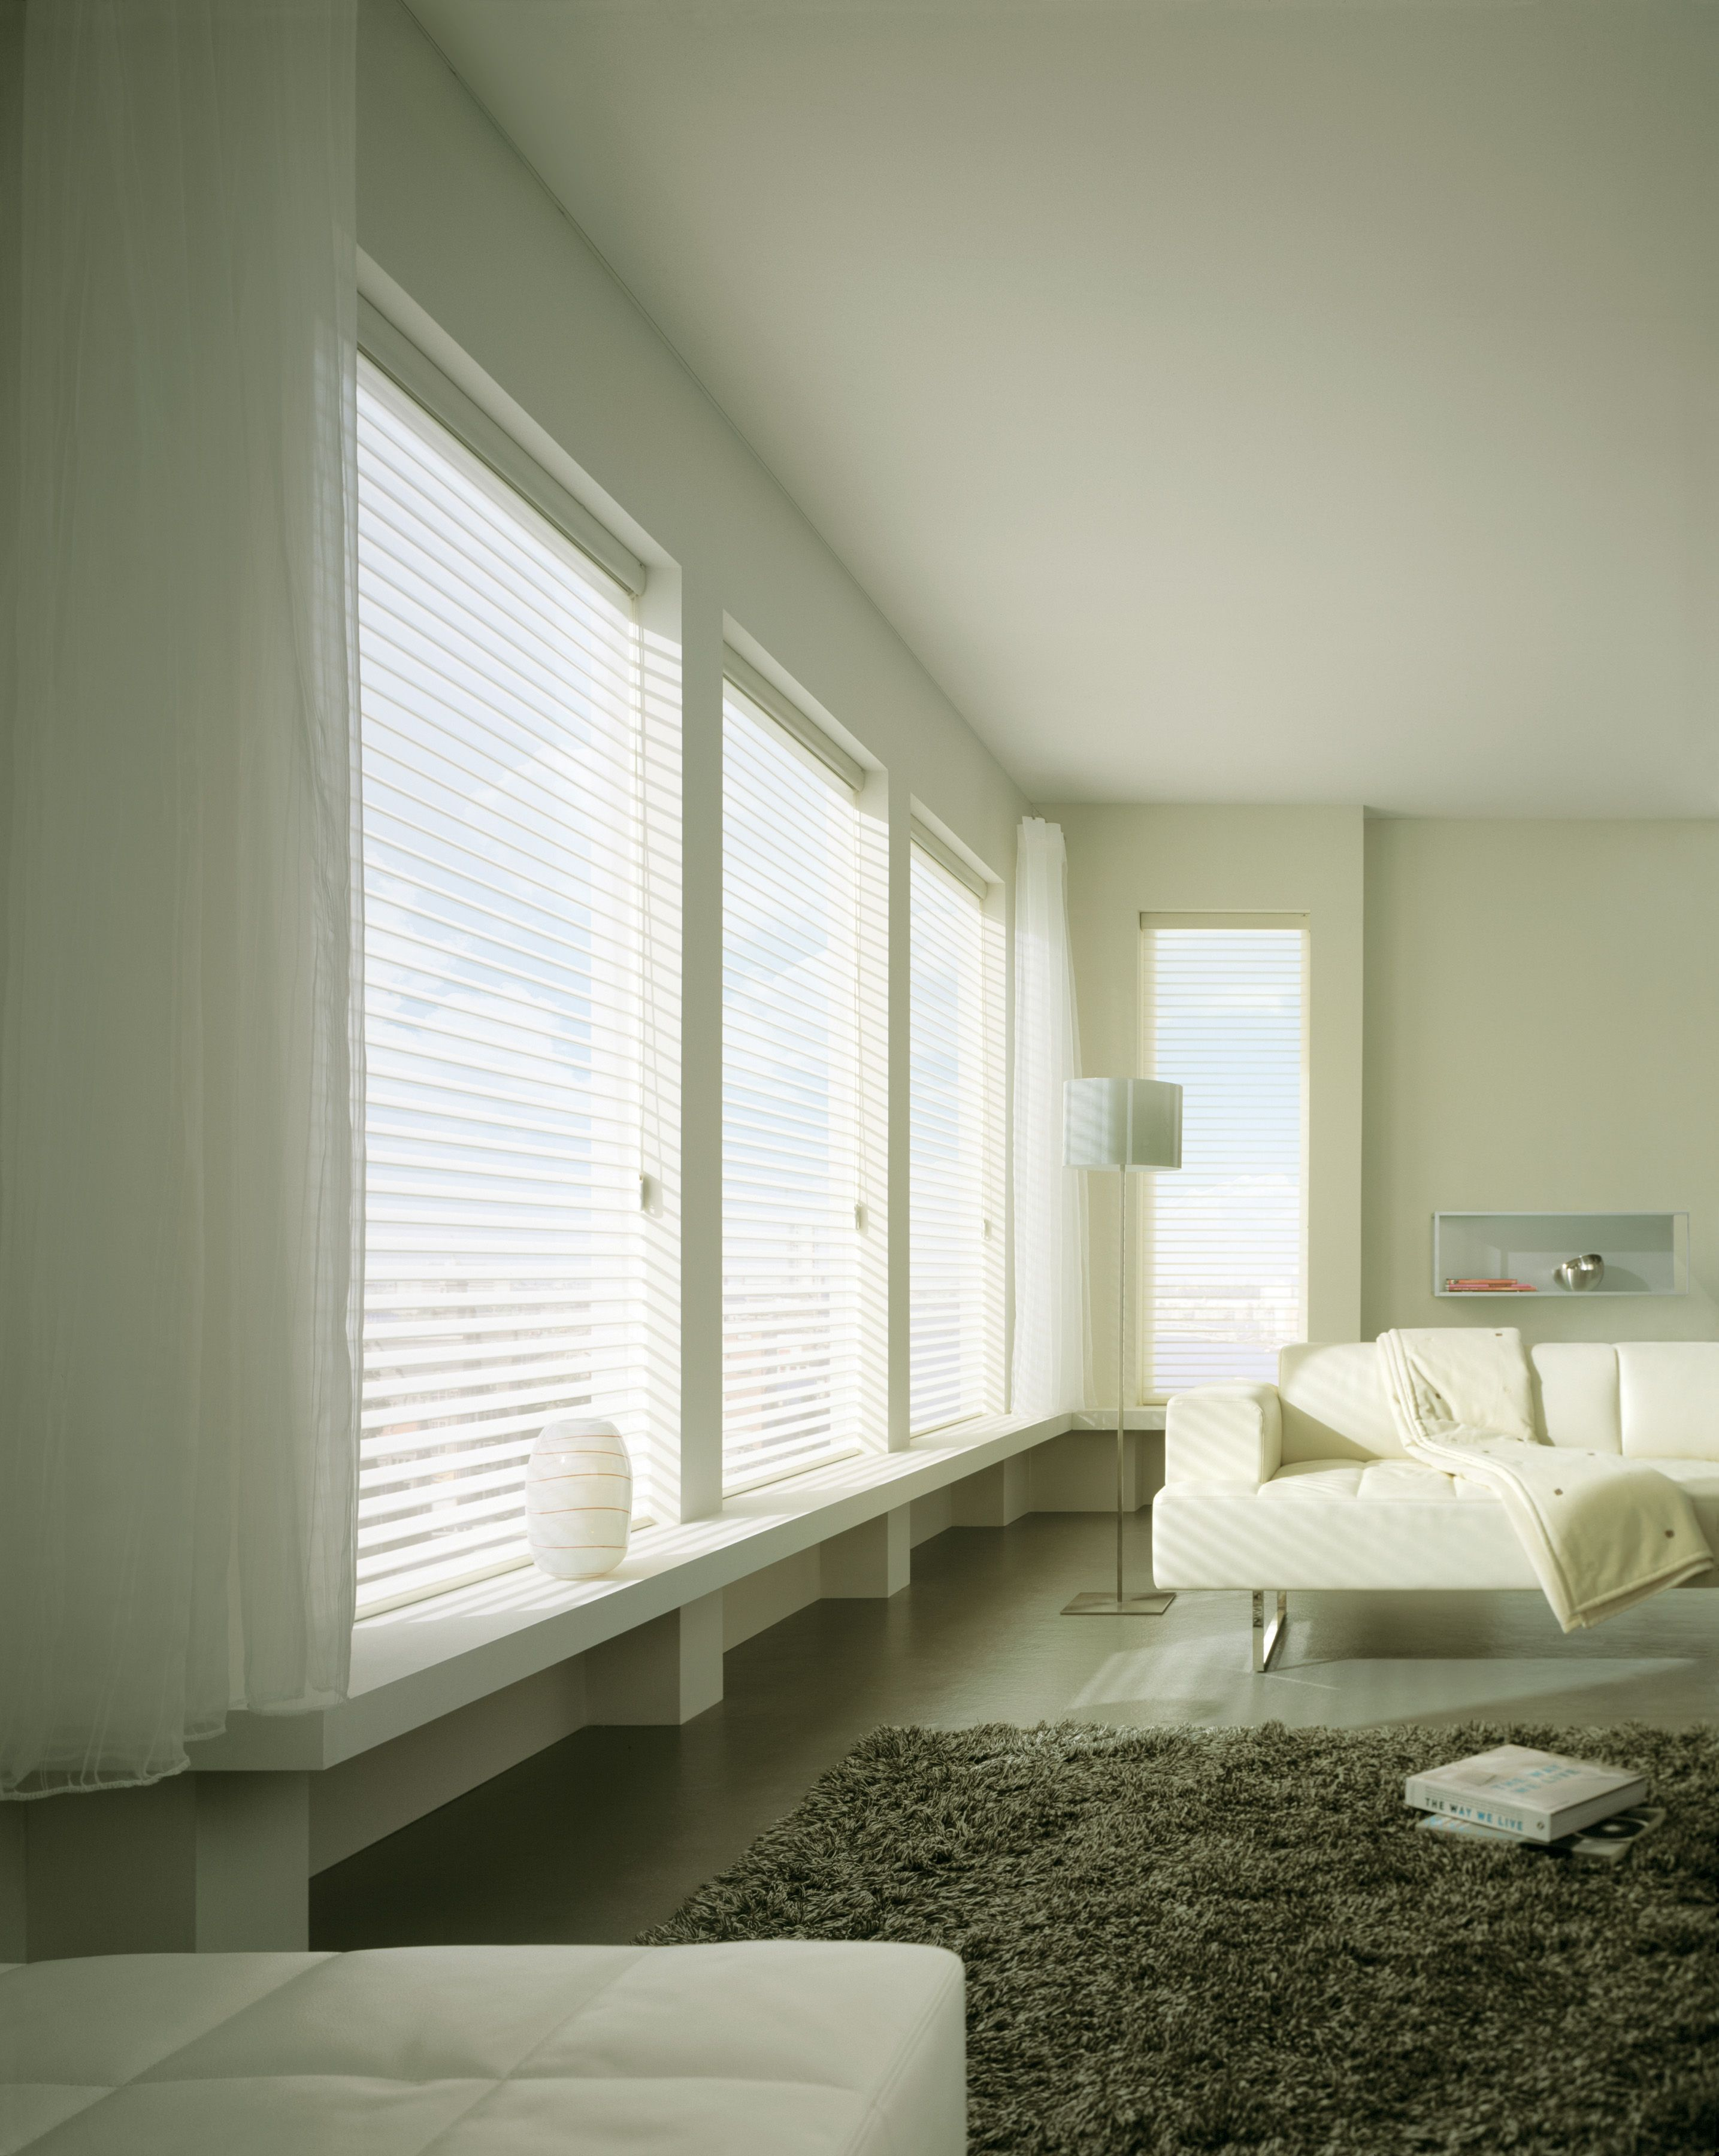 lets domestic blinds and blind privacy to where service silhouette closed enough any multi in warmth the open sil fabric yet light gives shade services when room needed